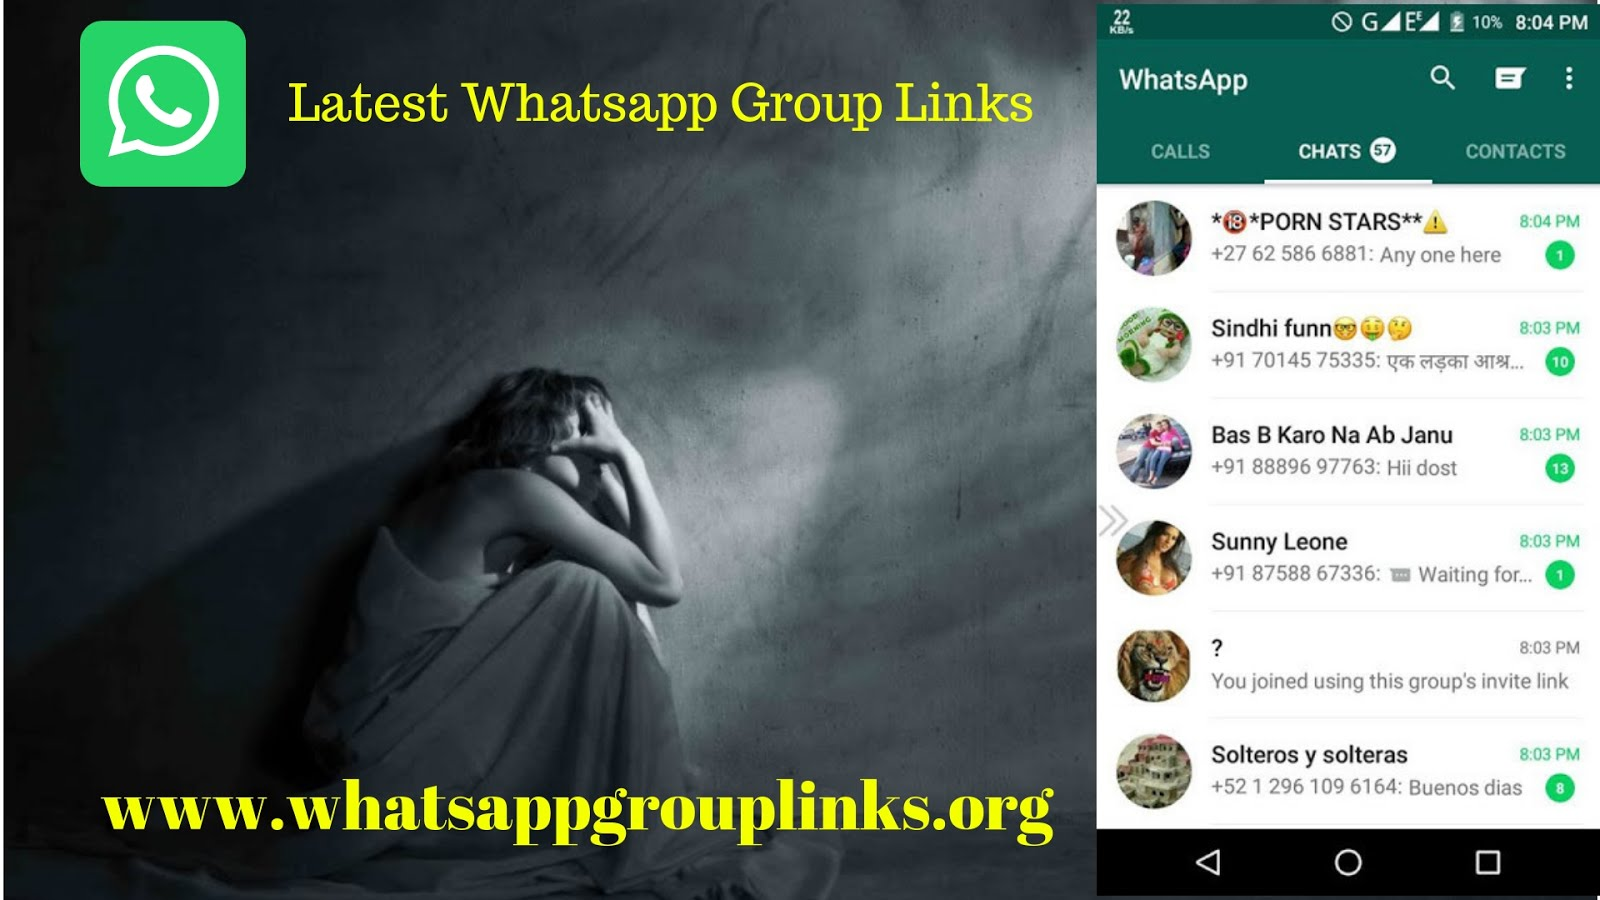 Latest Whatsapp Group Links - Whatsapp Group Links